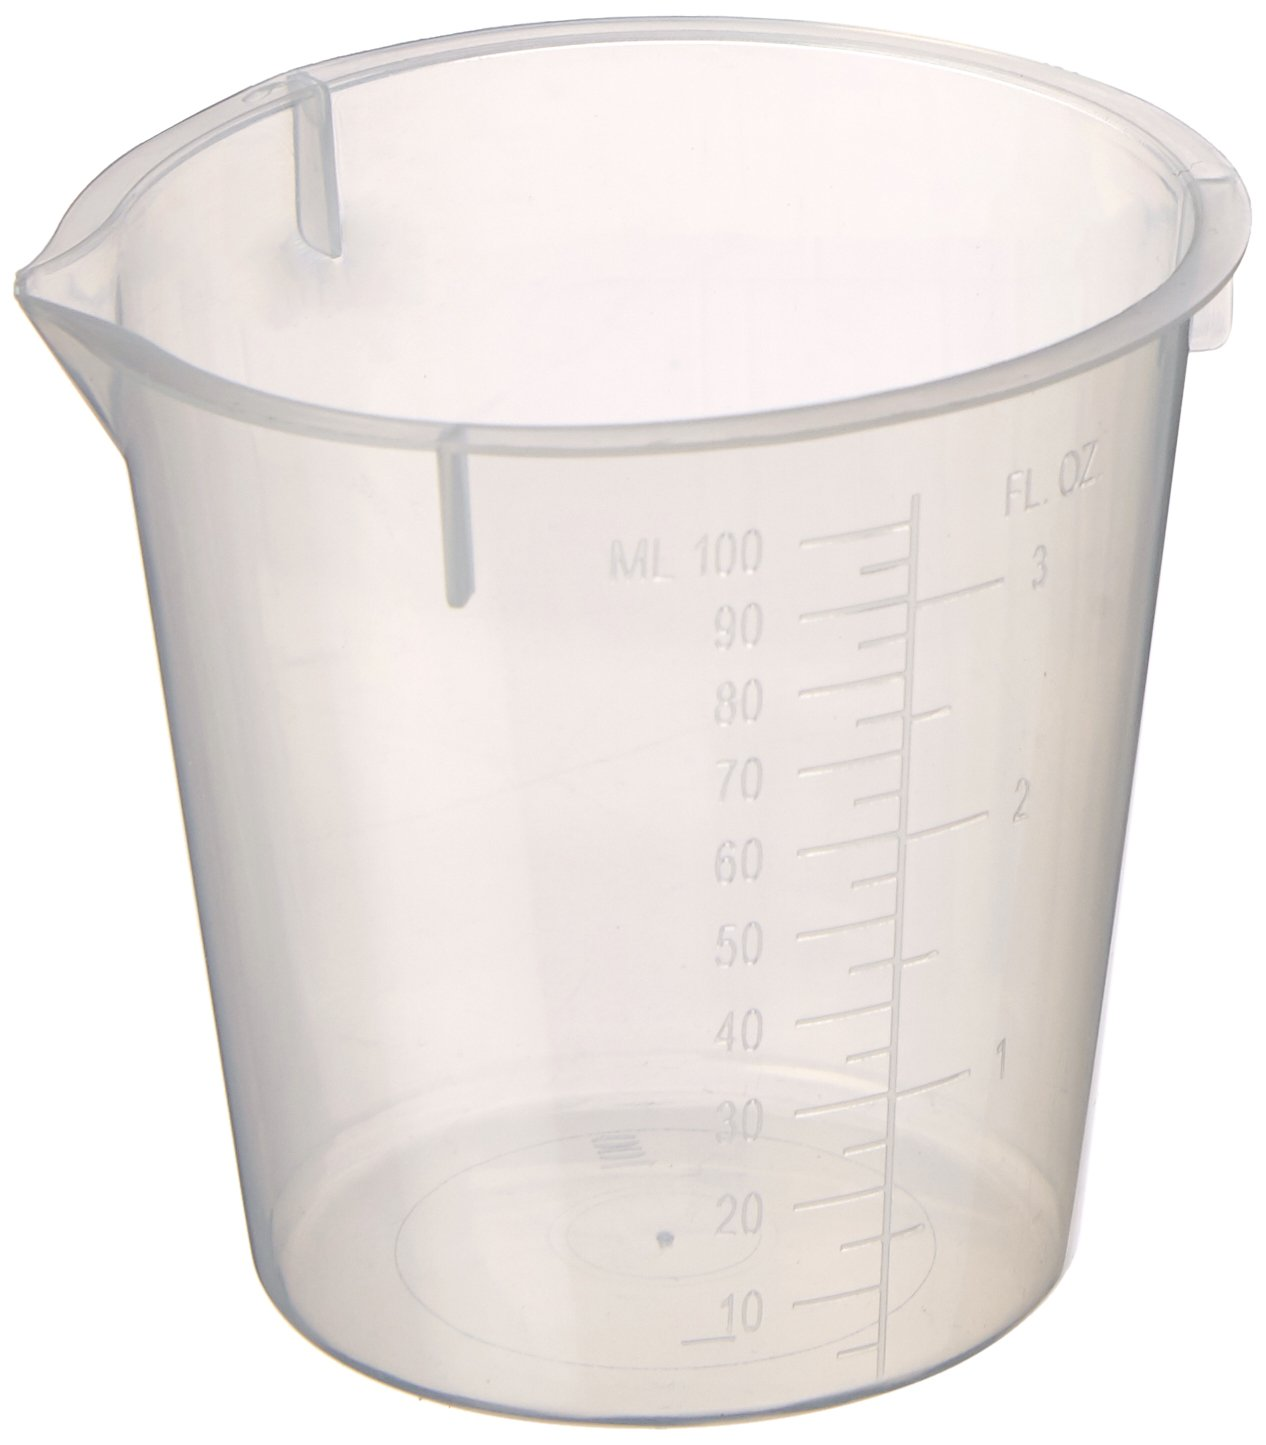 Maryland Plastics L-1230 Polypropylene Disposable Beaker, Graduated, 100 mL (Pack of 100)